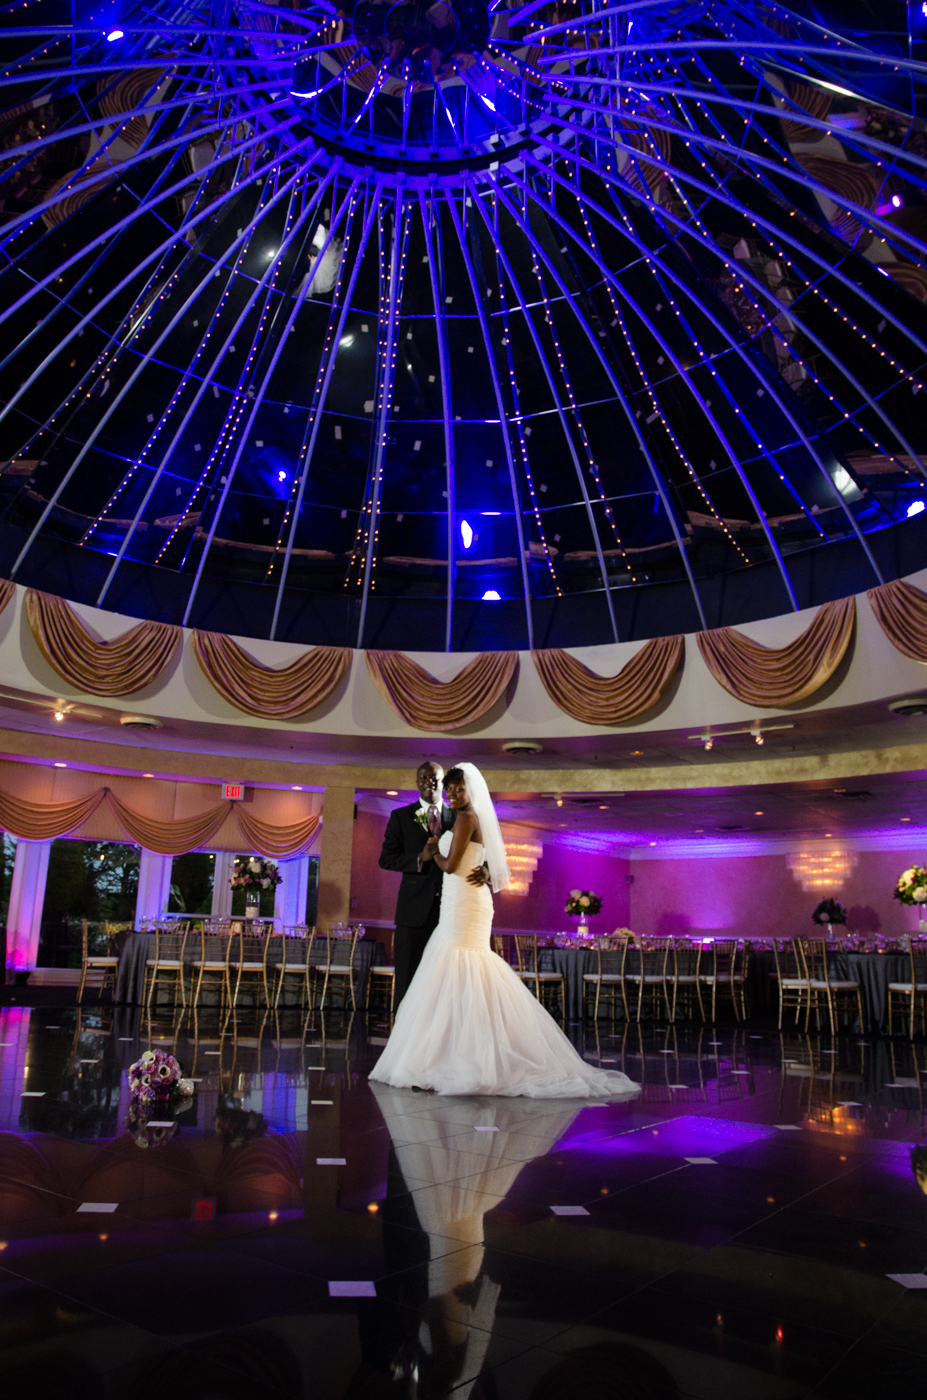 grand-marquis-new-jersey-wedding-photo-njohnston-photography-www.njohnstonphotog